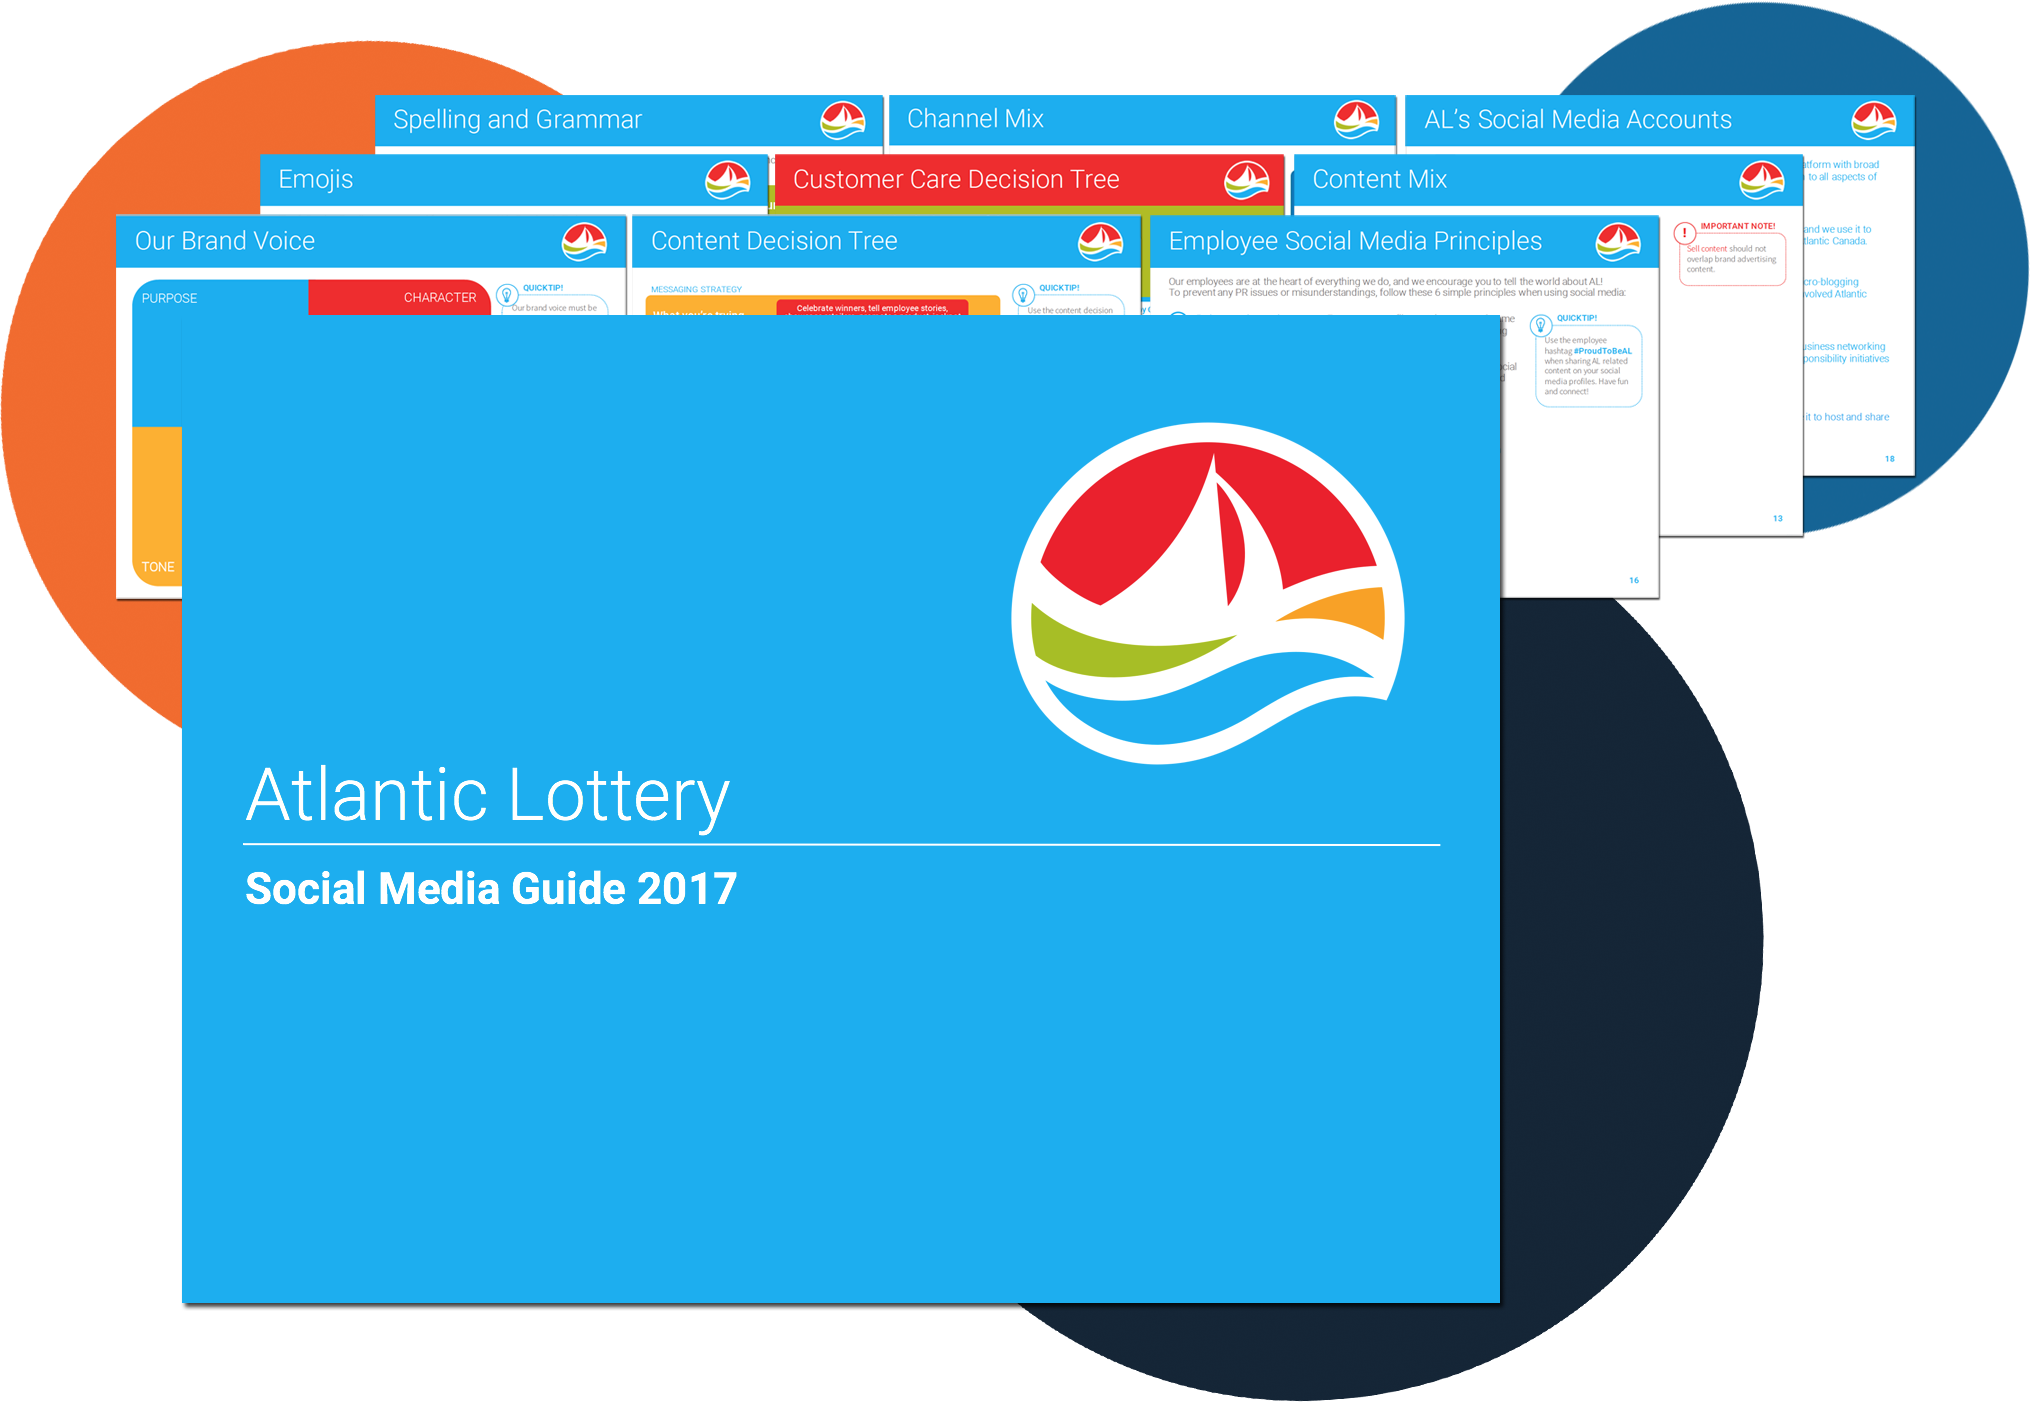 SSI's strategic work for Atlantic Lottery included a corporate social media style guide with brand voice and tone recommendations, a customer care decision tree, employee social media principles and more.